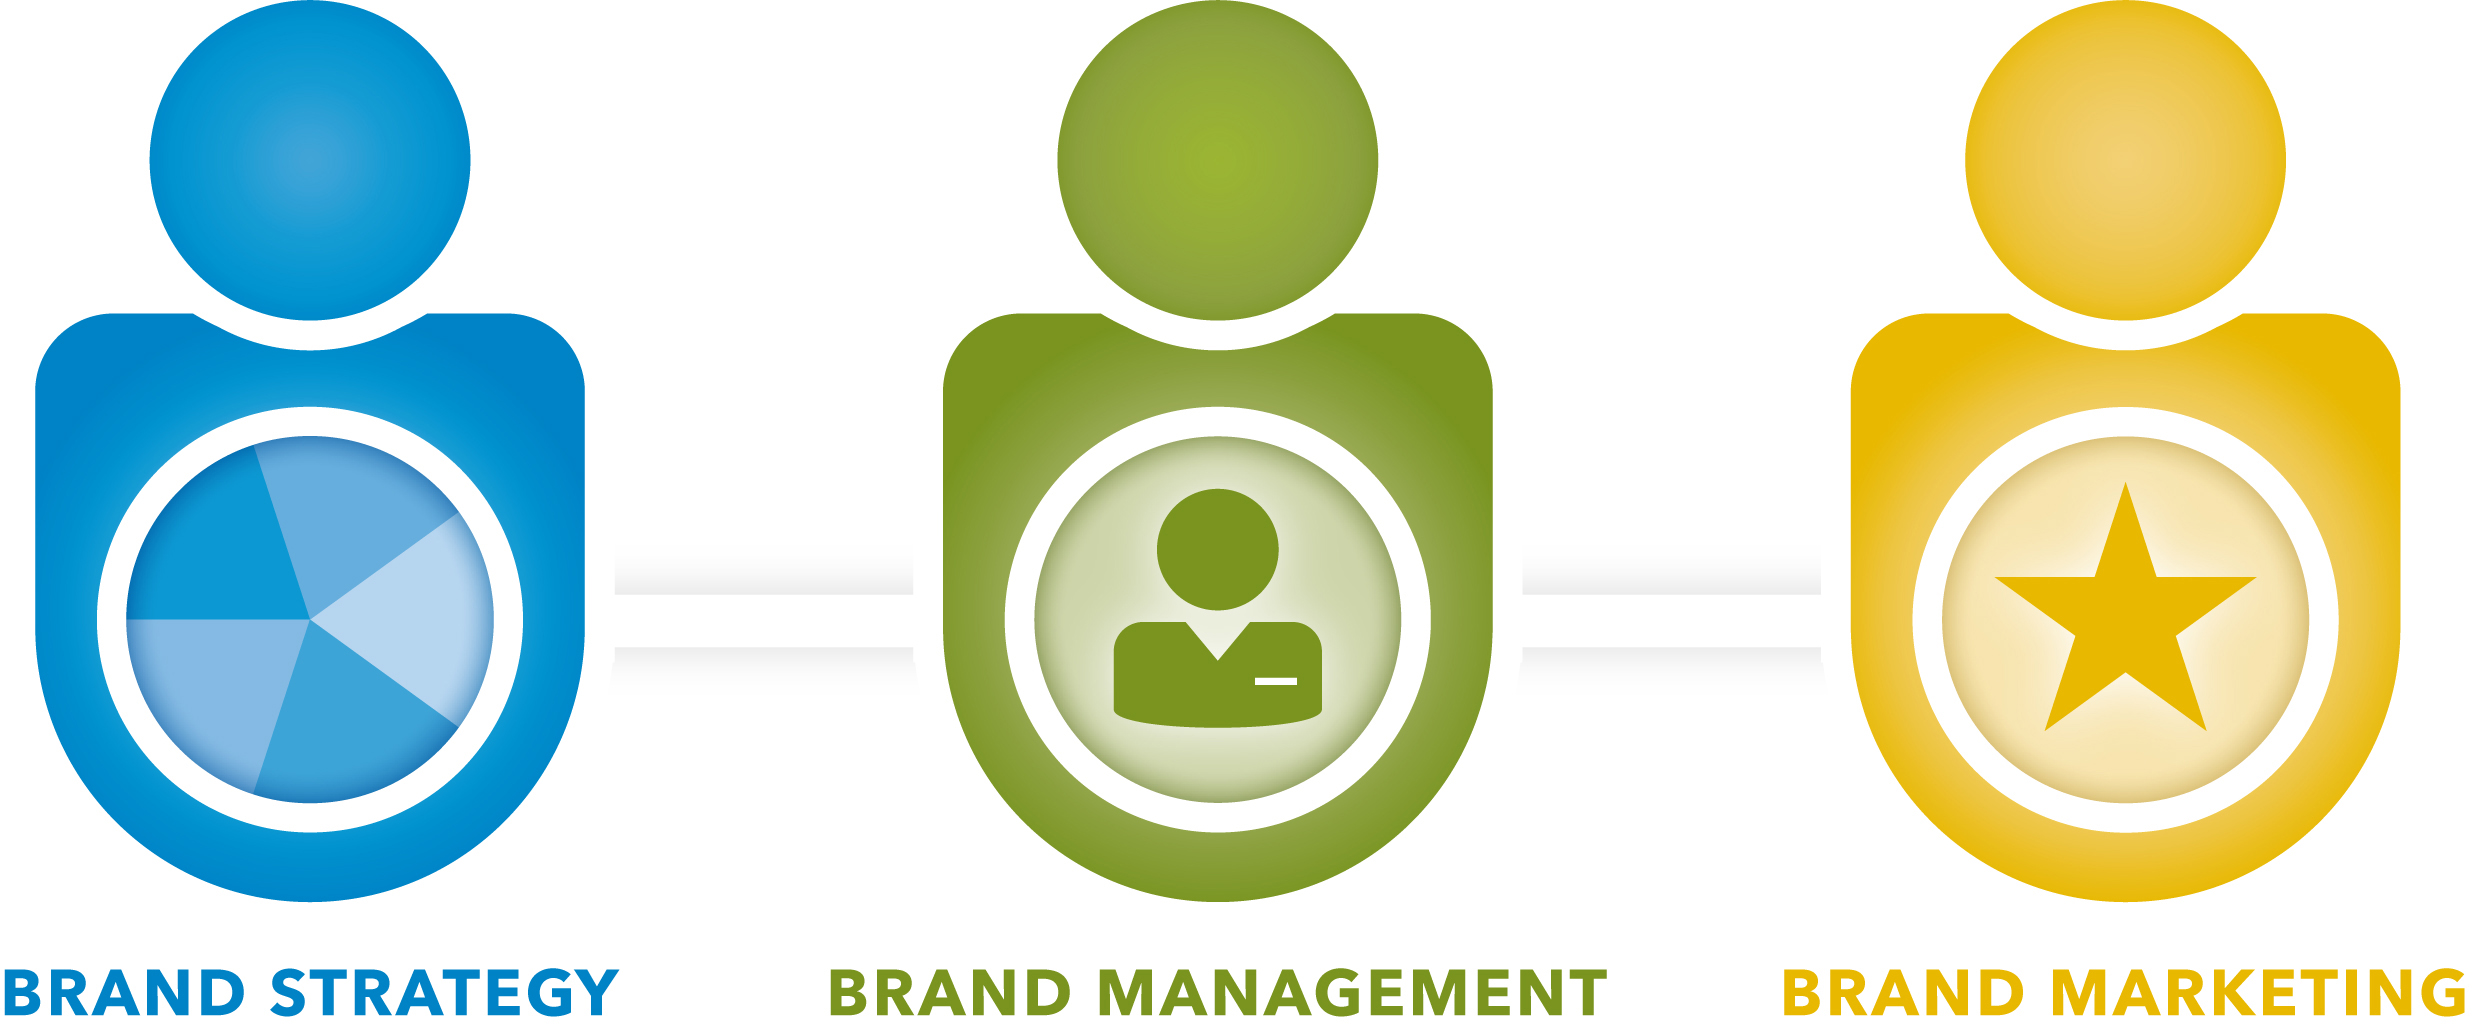 Brand services - I help companies define, operationalize and communicate their brand